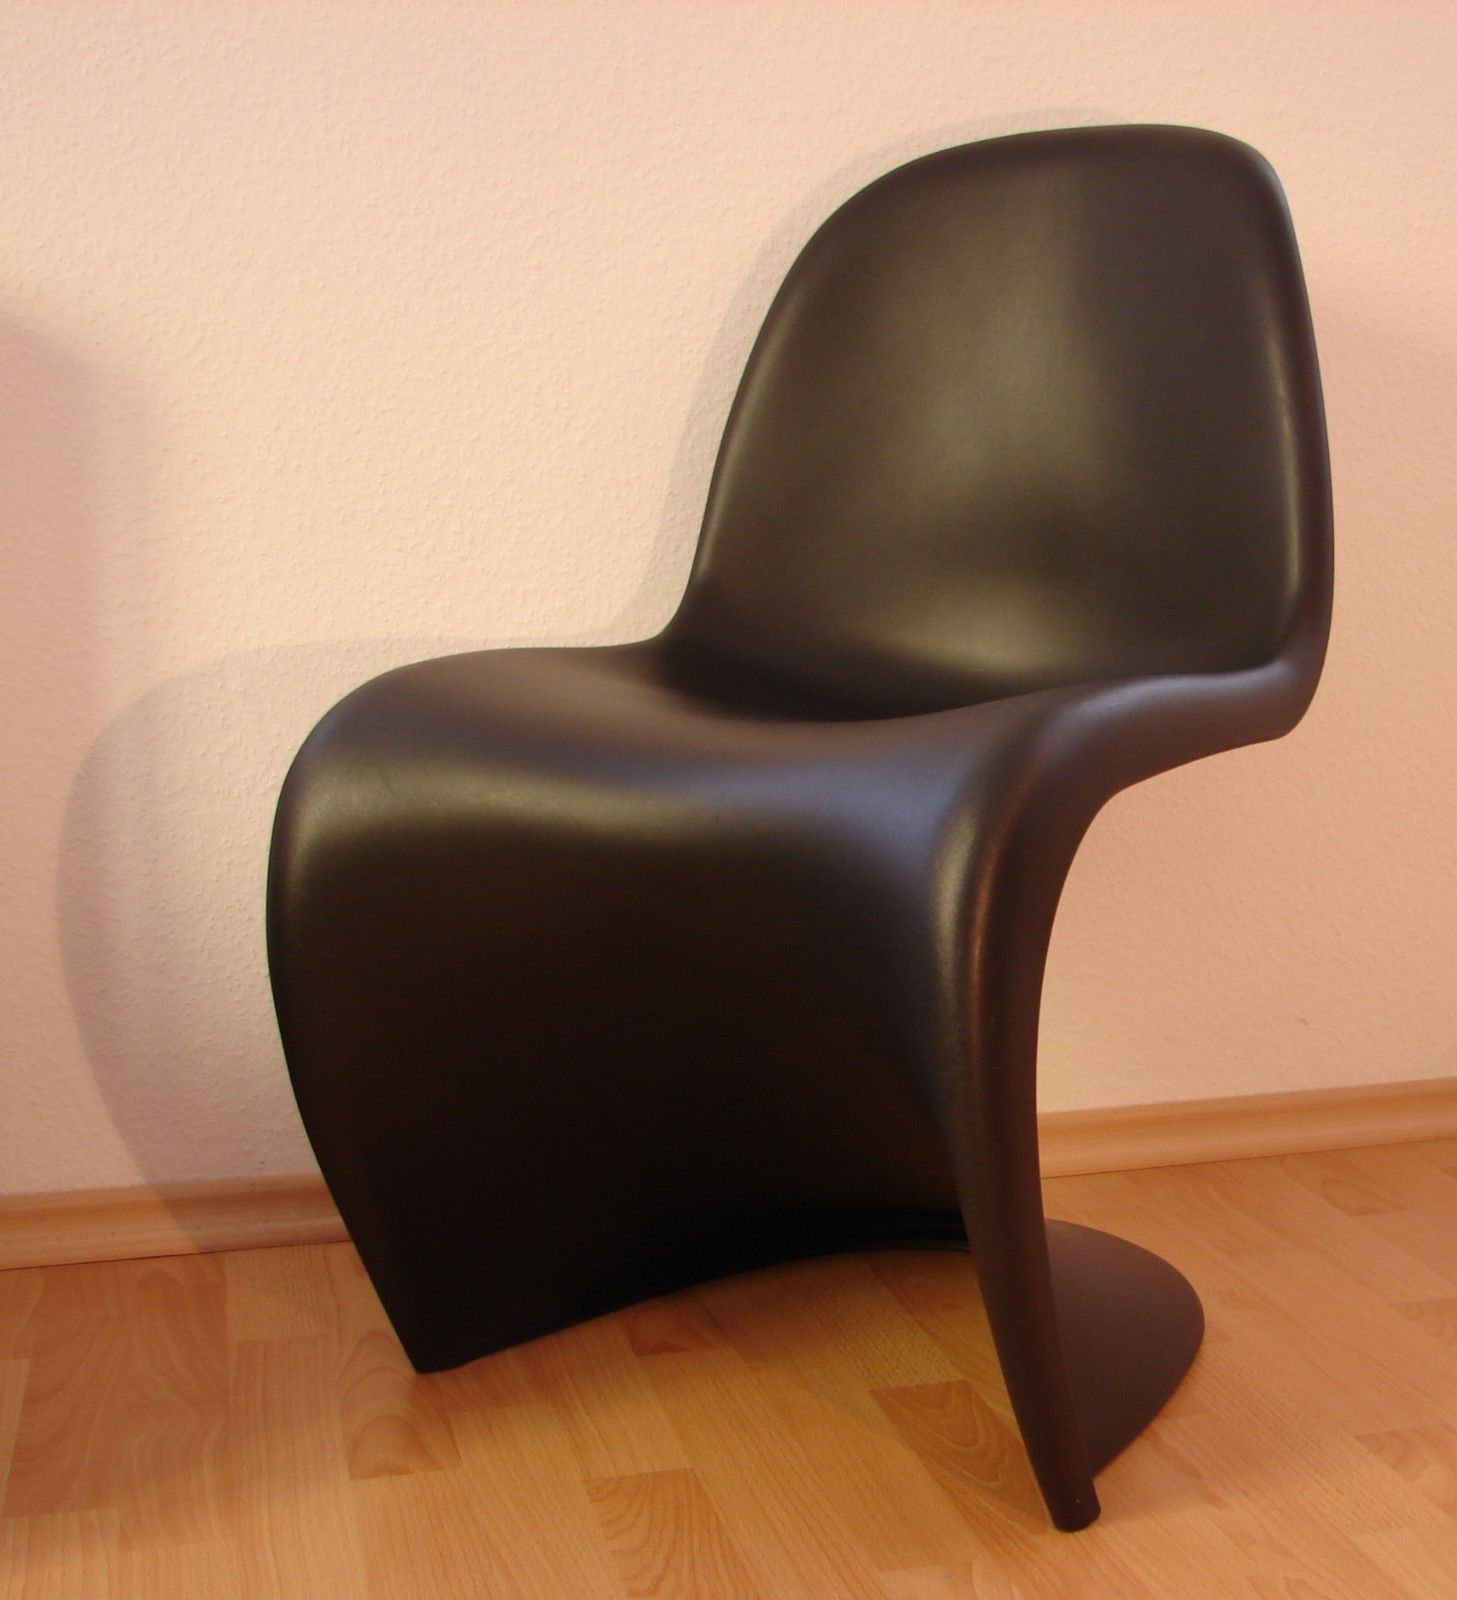 panton chair vitra ebay panton junior chair ebay panton junior chair ebay original design file. Black Bedroom Furniture Sets. Home Design Ideas